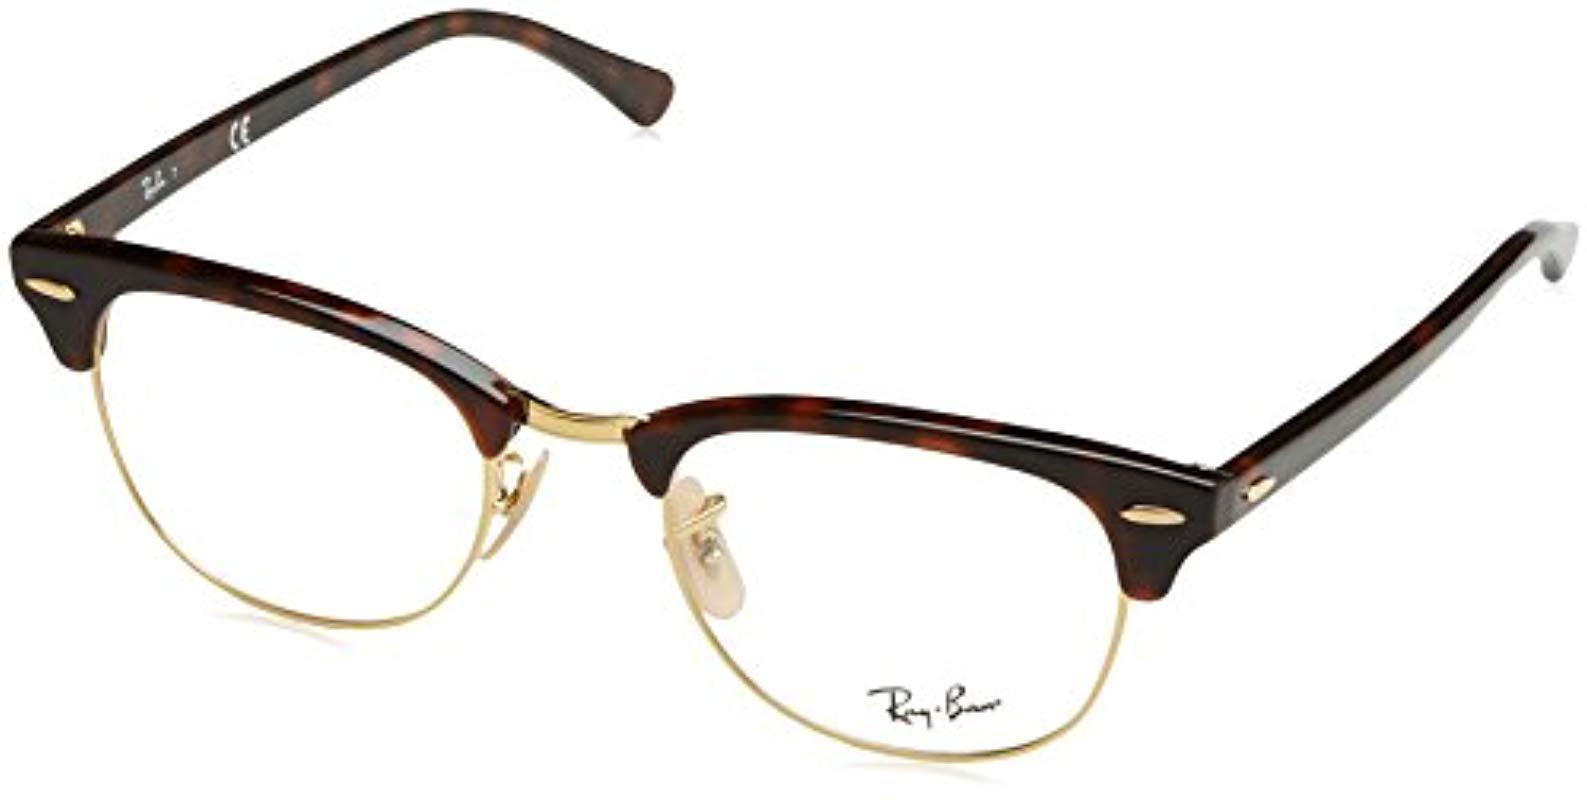 fce4449acf Ray-Ban Rx5154 Glasses In Brown Havana Rx5154 5494 49 in Brown - Lyst